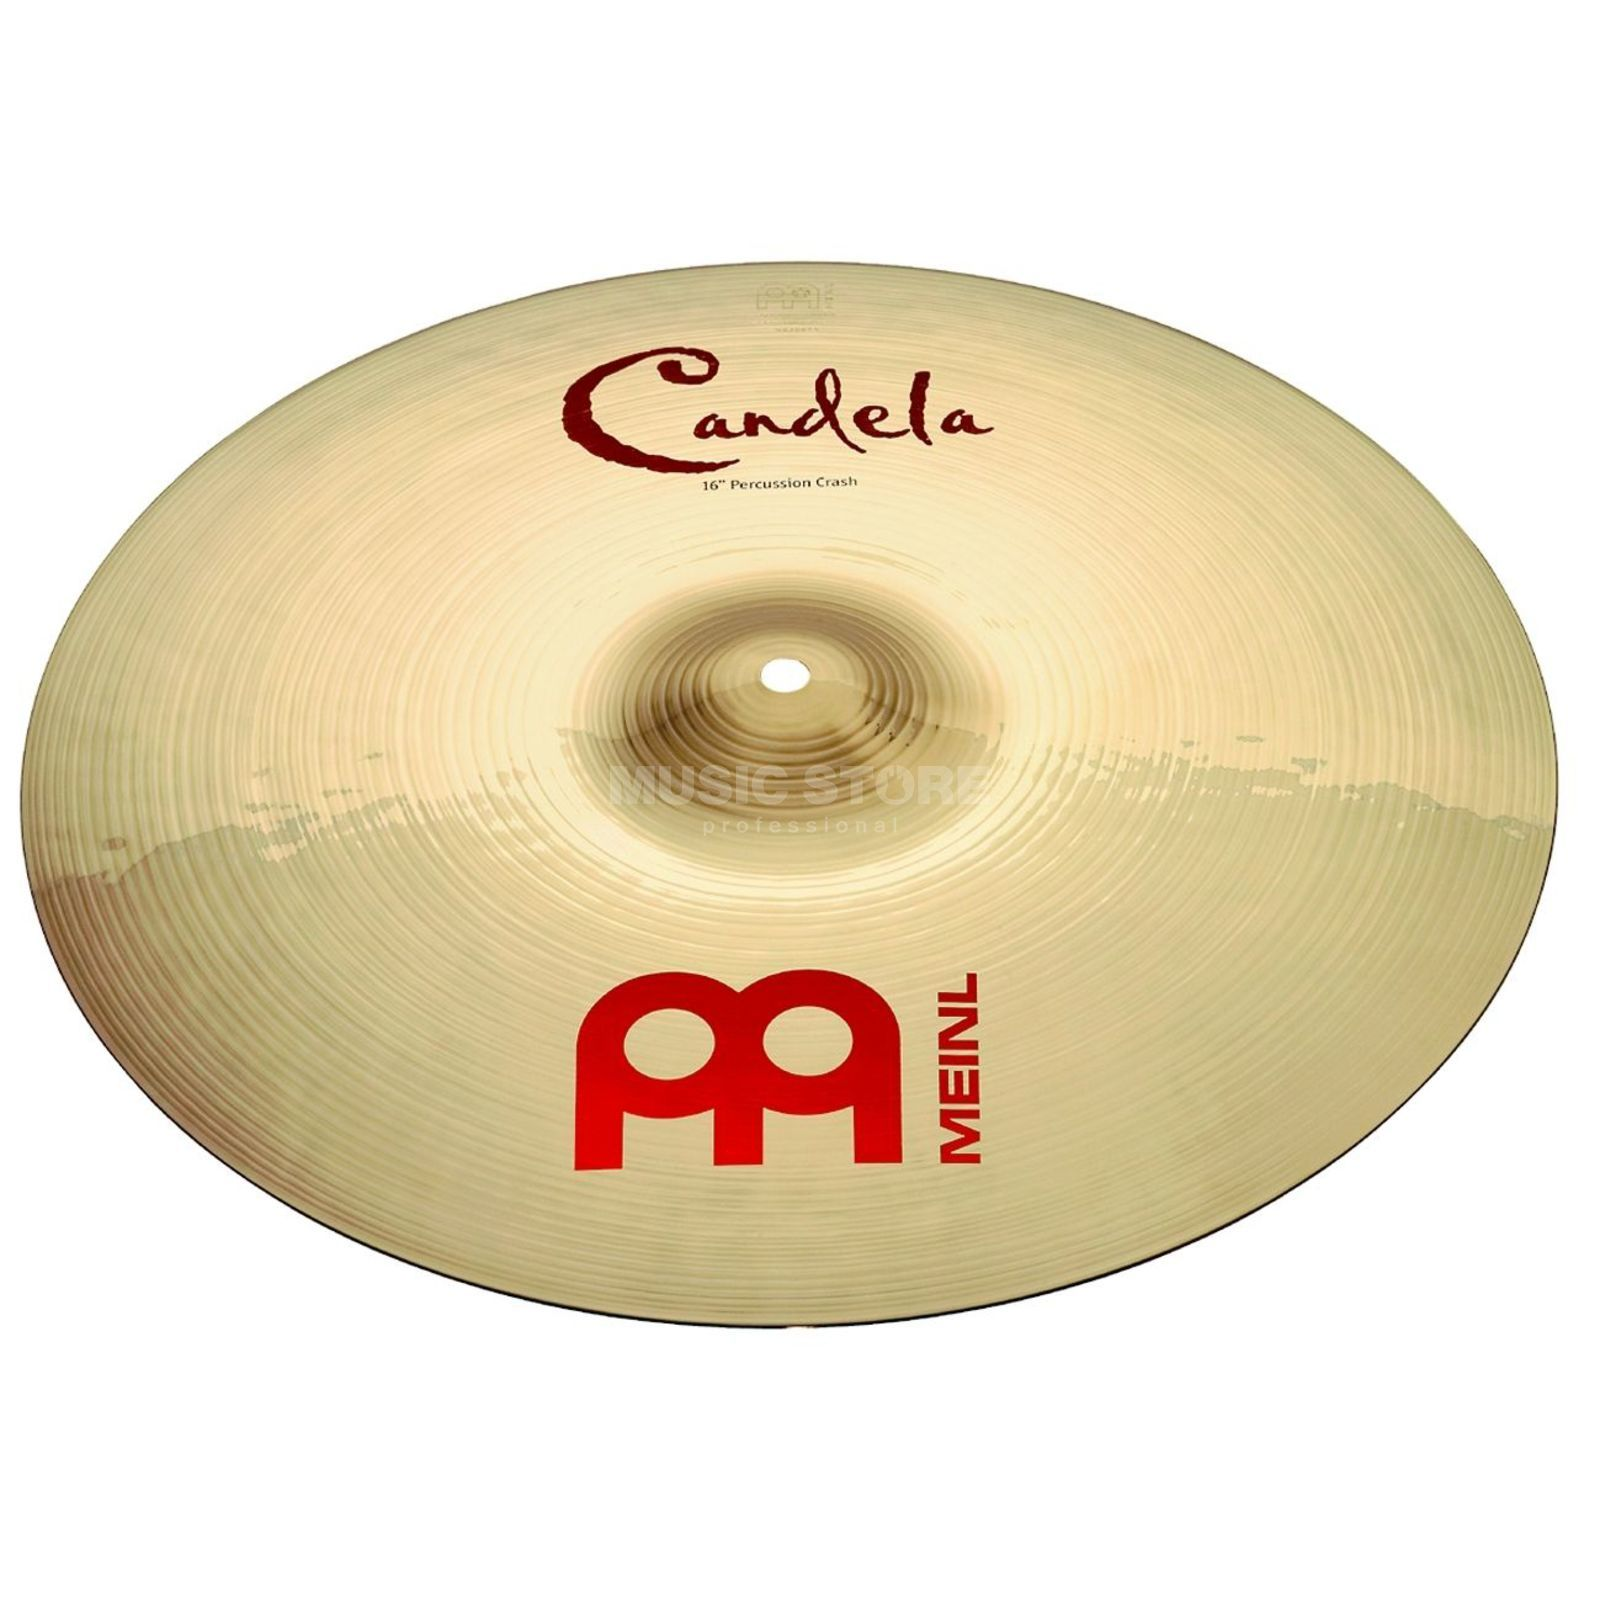 "Meinl Candela Crash 14"", CA14C, Percussion Cymbal, Overstock Produktbild"